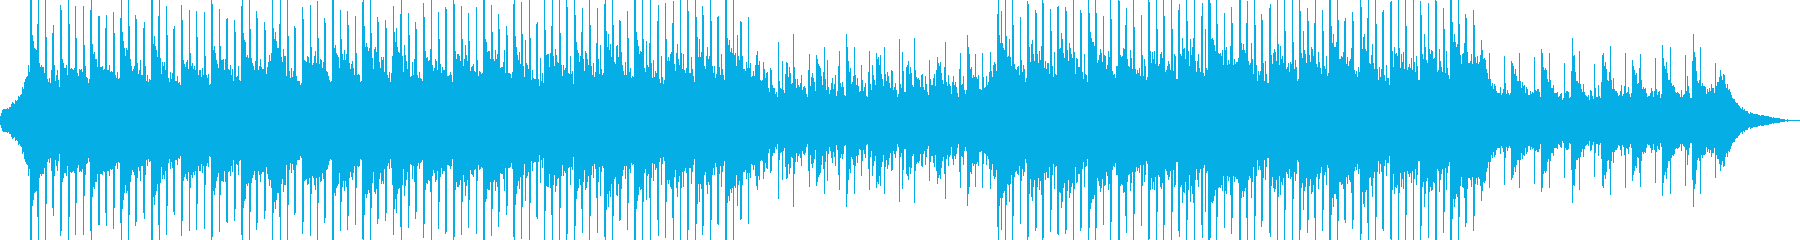 Company BGM with a good and clean image's reproduced waveform